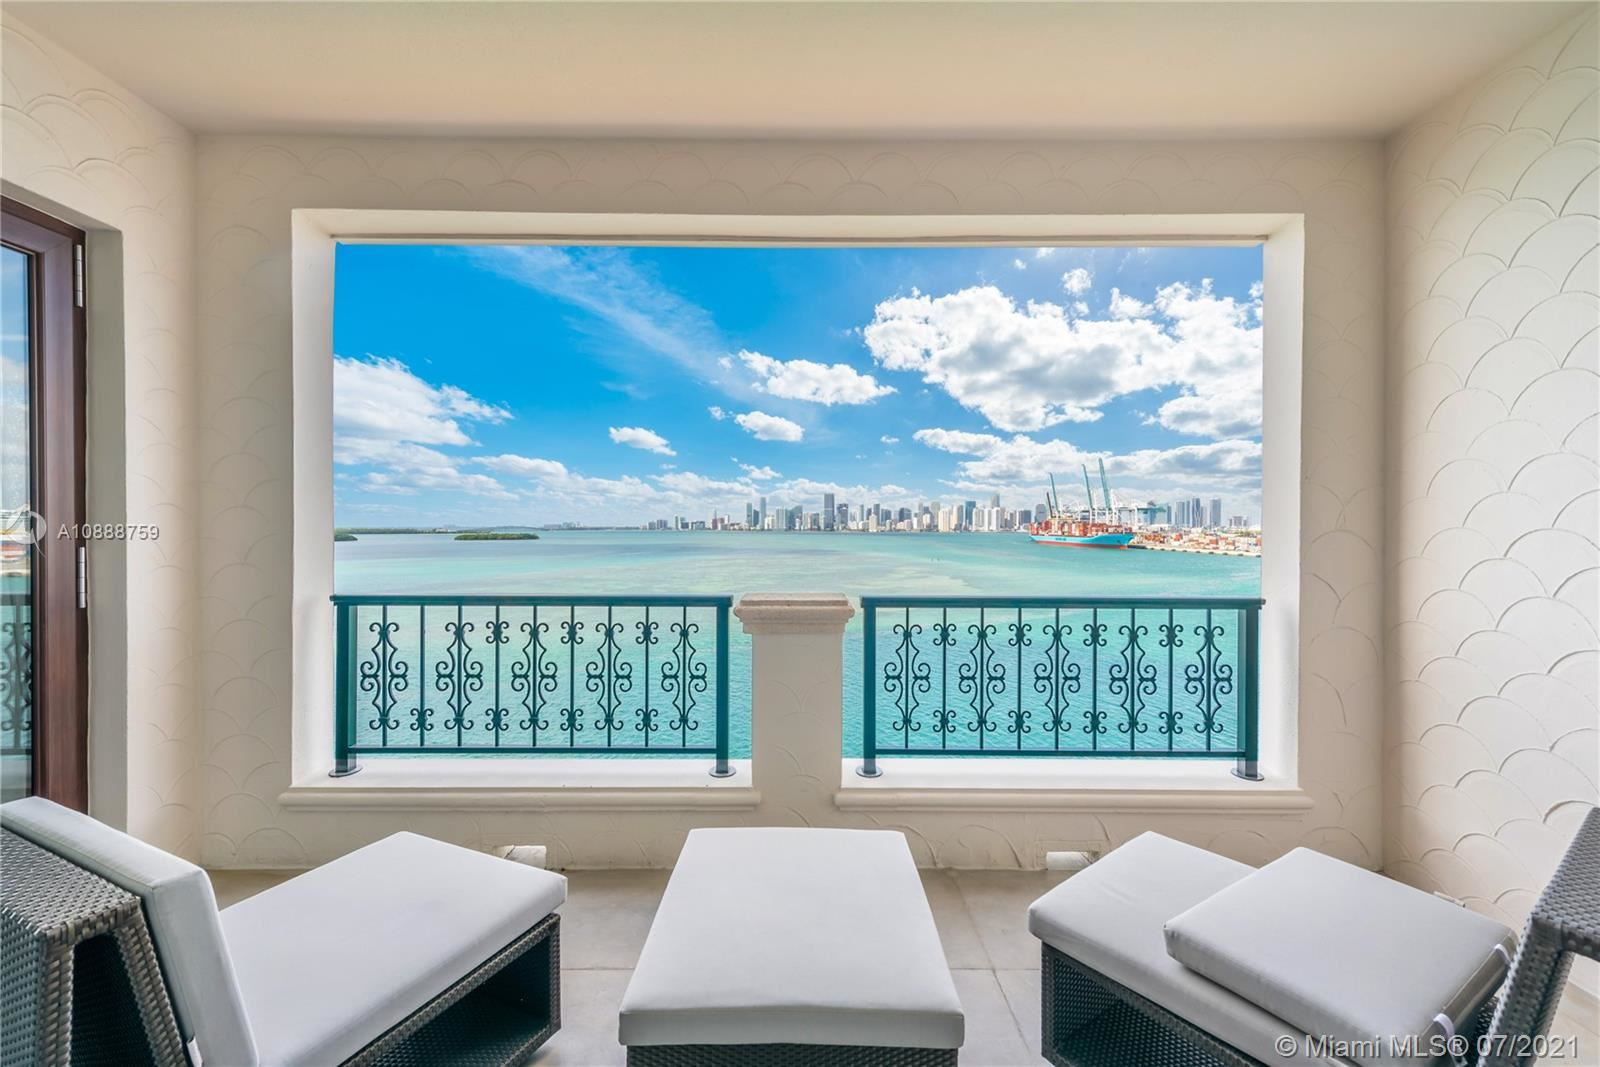 Photo 53 of Listing MLS a10888759 in 5282 Fisher Island Dr #5282 Miami FL 33109